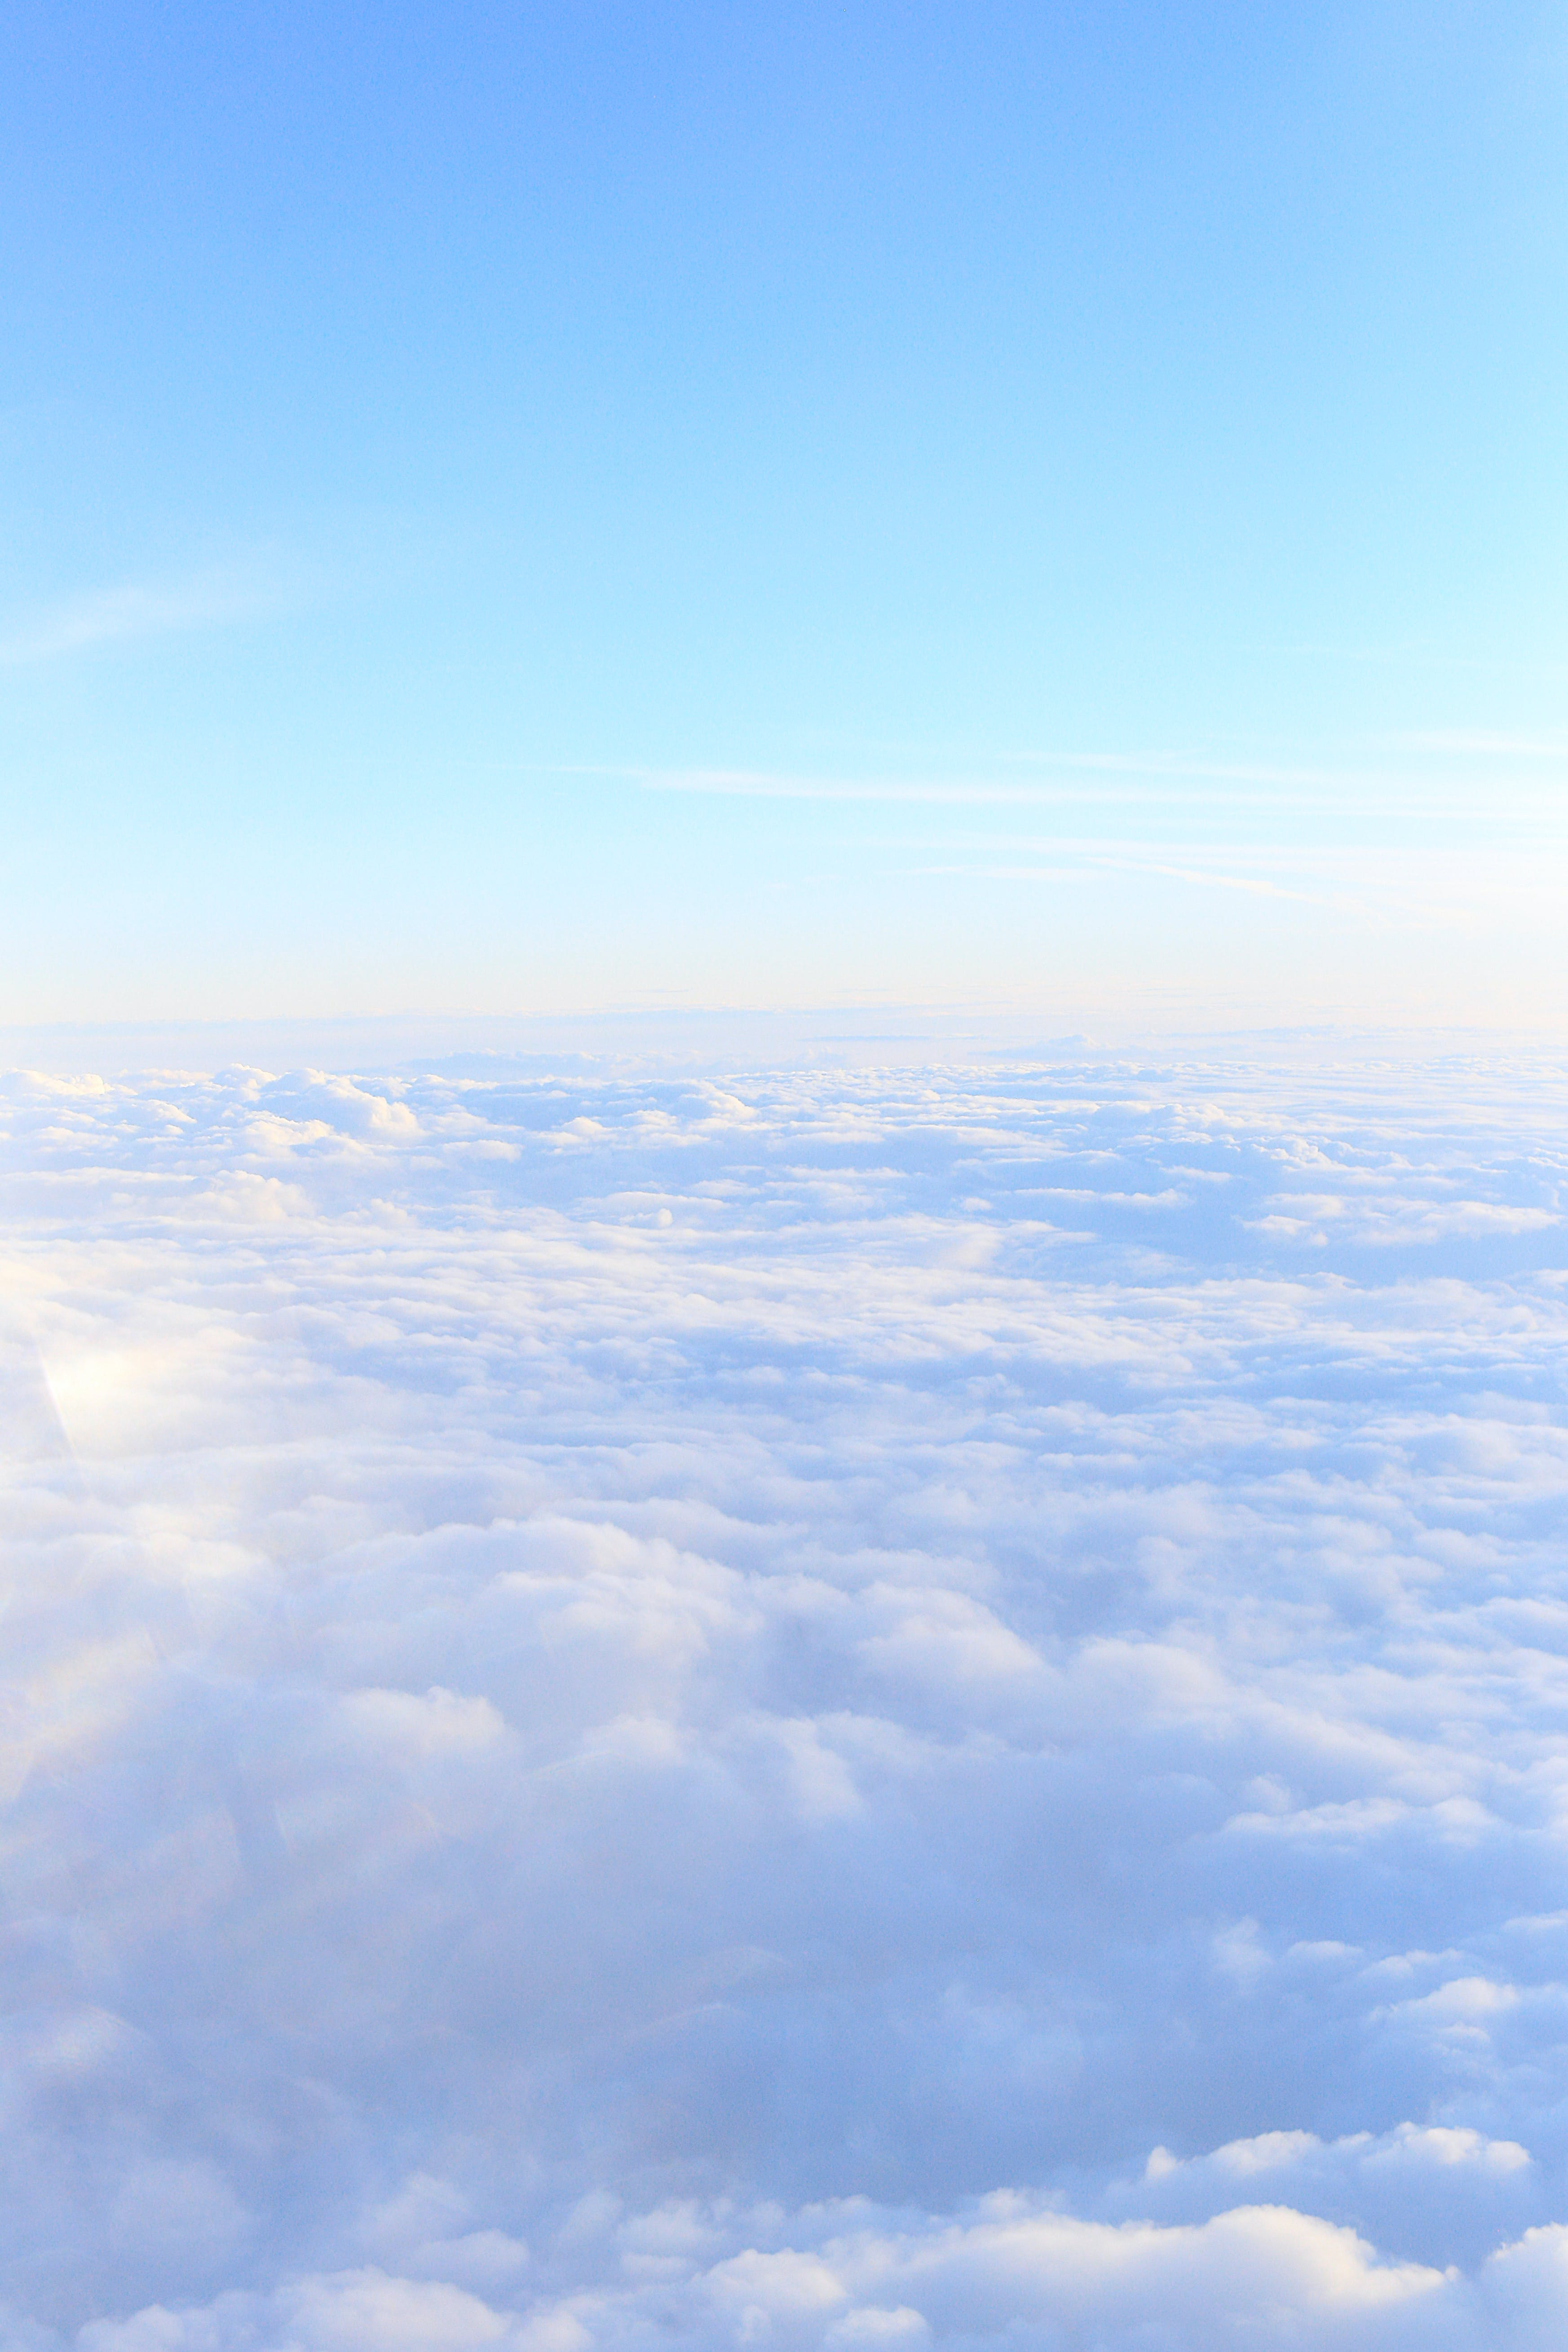 Free stock photo of above, aerial view, atmosphere, blue